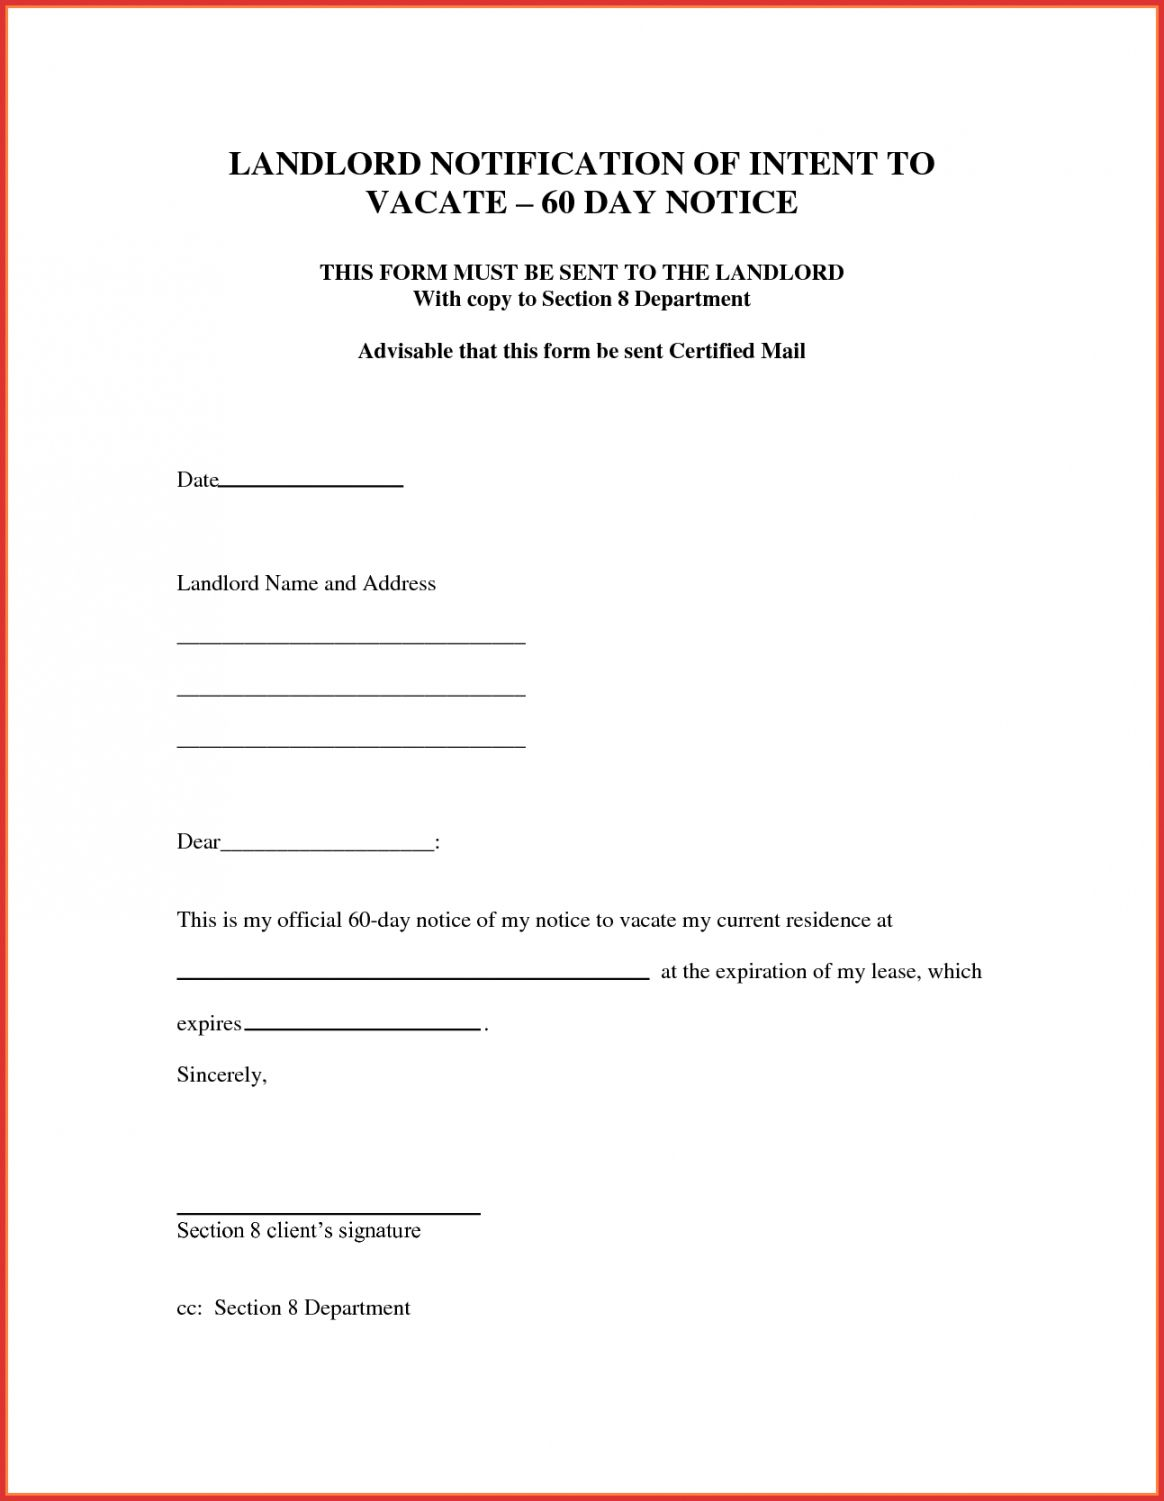 004 Dreaded 60 Day Notice Template Photo  To Landlord Move Out Letter Apartment LeaseFull